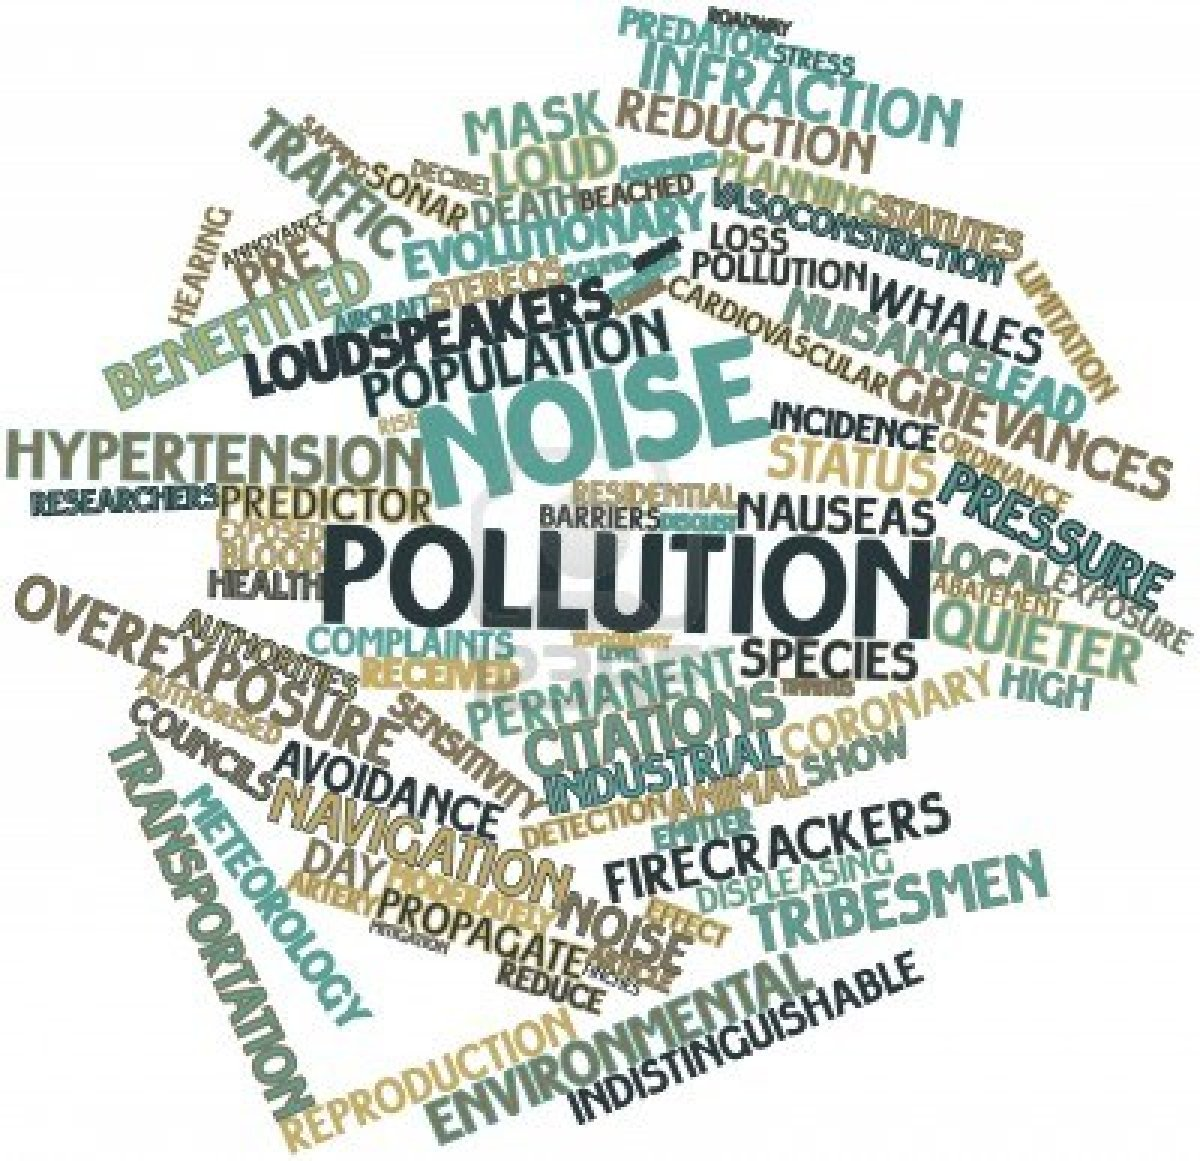 noise pollution essays Noise has numerous health effects making noise pollution a public concern although it has not been well addressedthese could be effected our blood pressure, noise -induced hearing loss,sleep disorders and irritabilitynoise pollution also affects the performance at work and school.